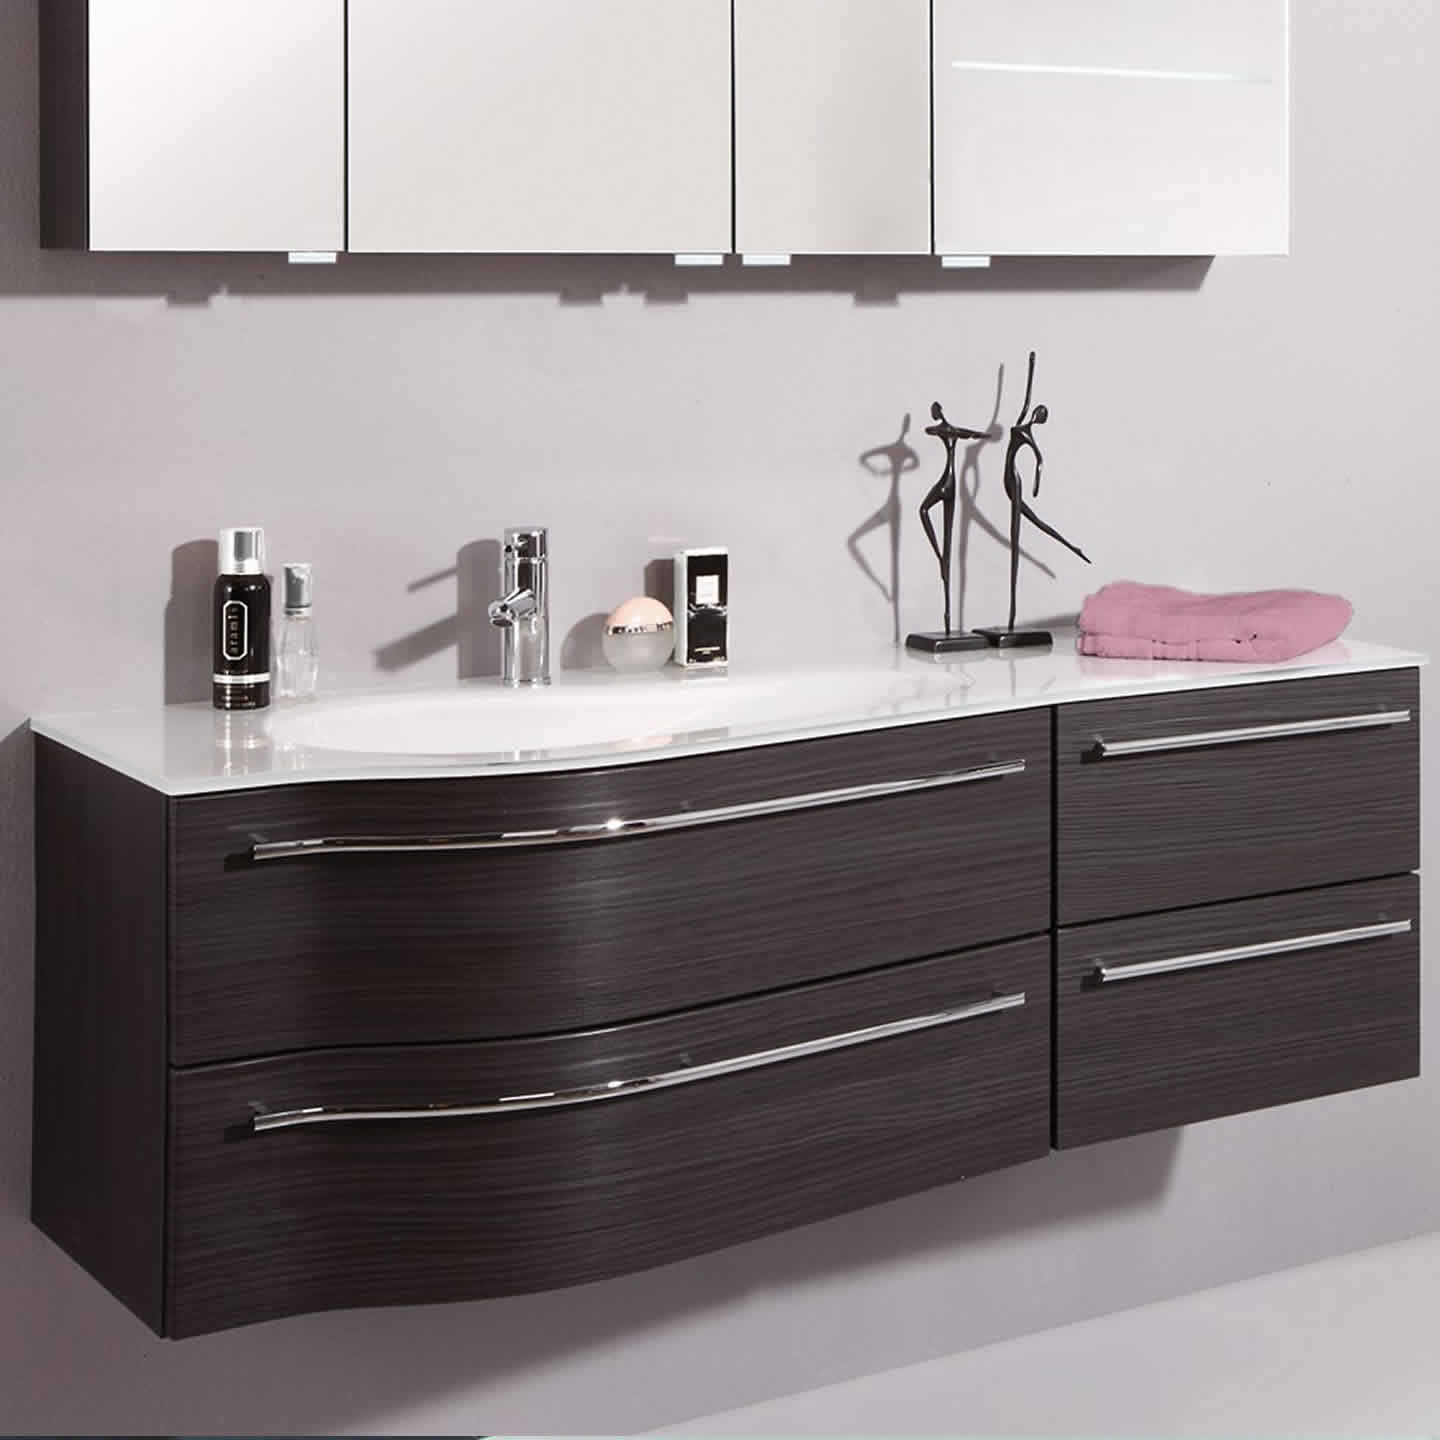 waschtisch 140 cm breit badm bel set cardiff mit. Black Bedroom Furniture Sets. Home Design Ideas